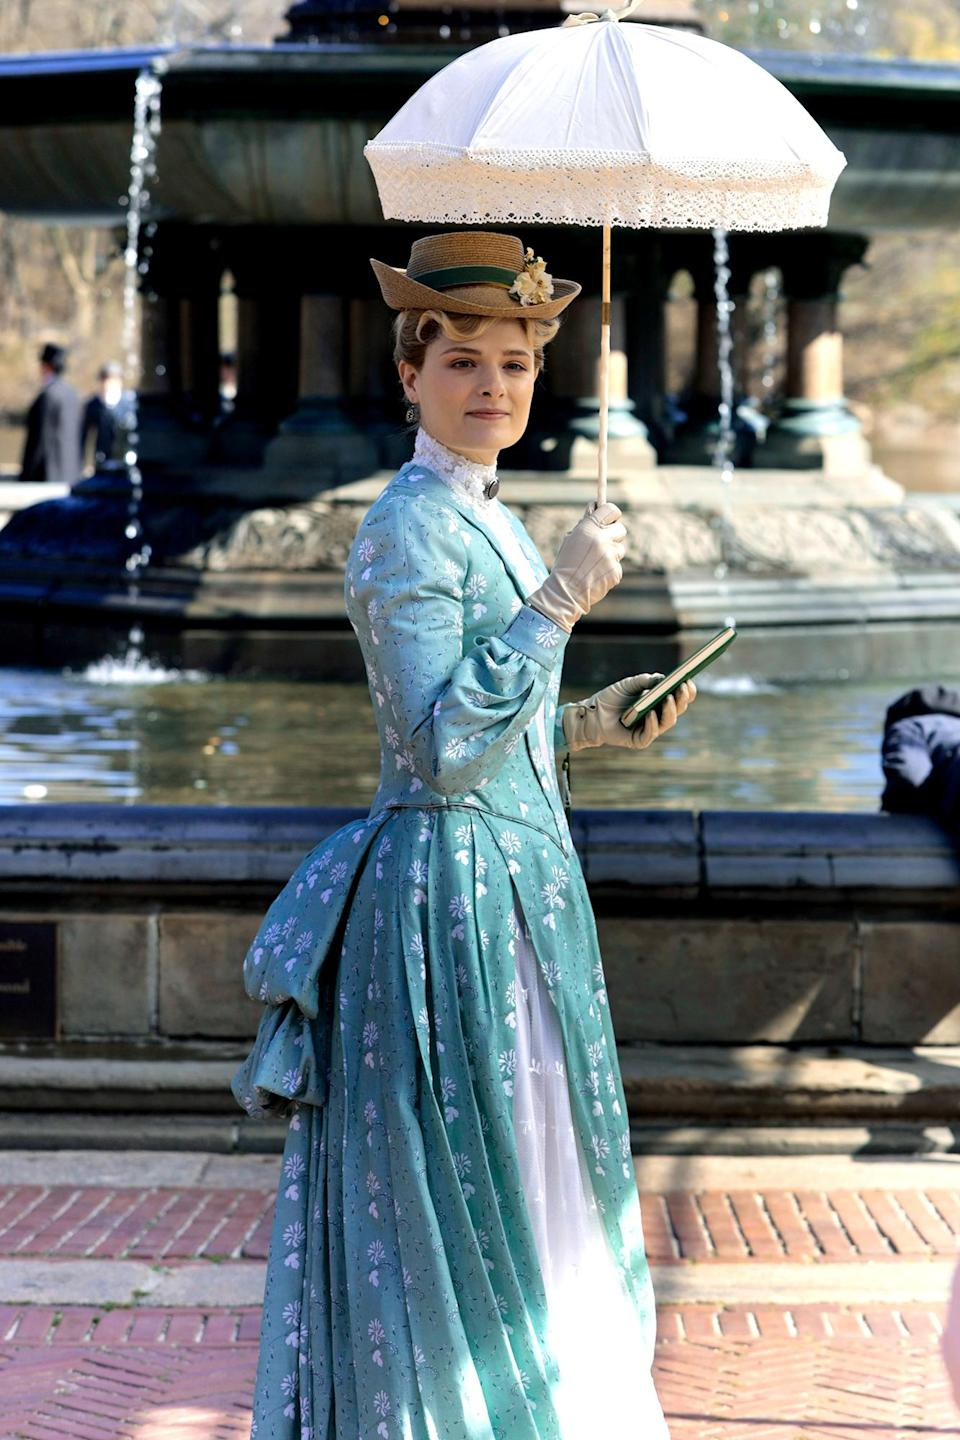 <p>Meryl Streep's daughter Louisa Jacobson and Thomas Cocquerel were seen filming HBO's <em>The Guilded Age</em> in New York City. </p>